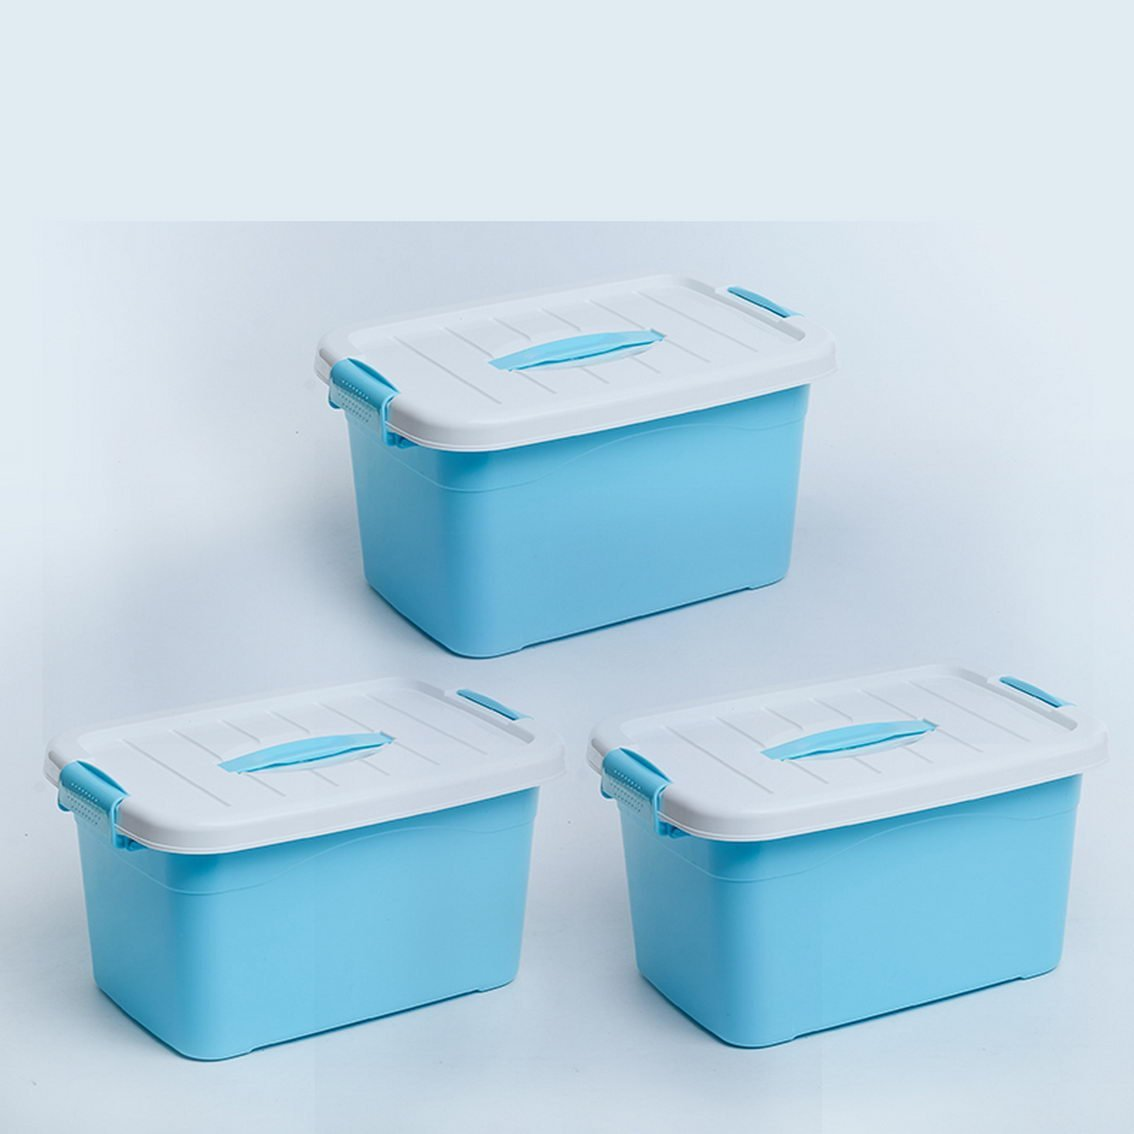 jii2030shann Storage box plastic box of toys sorting packing storage compartment box covered boxes of snacks storage box storage box storage box finishing box glove box storage box glove box storage b